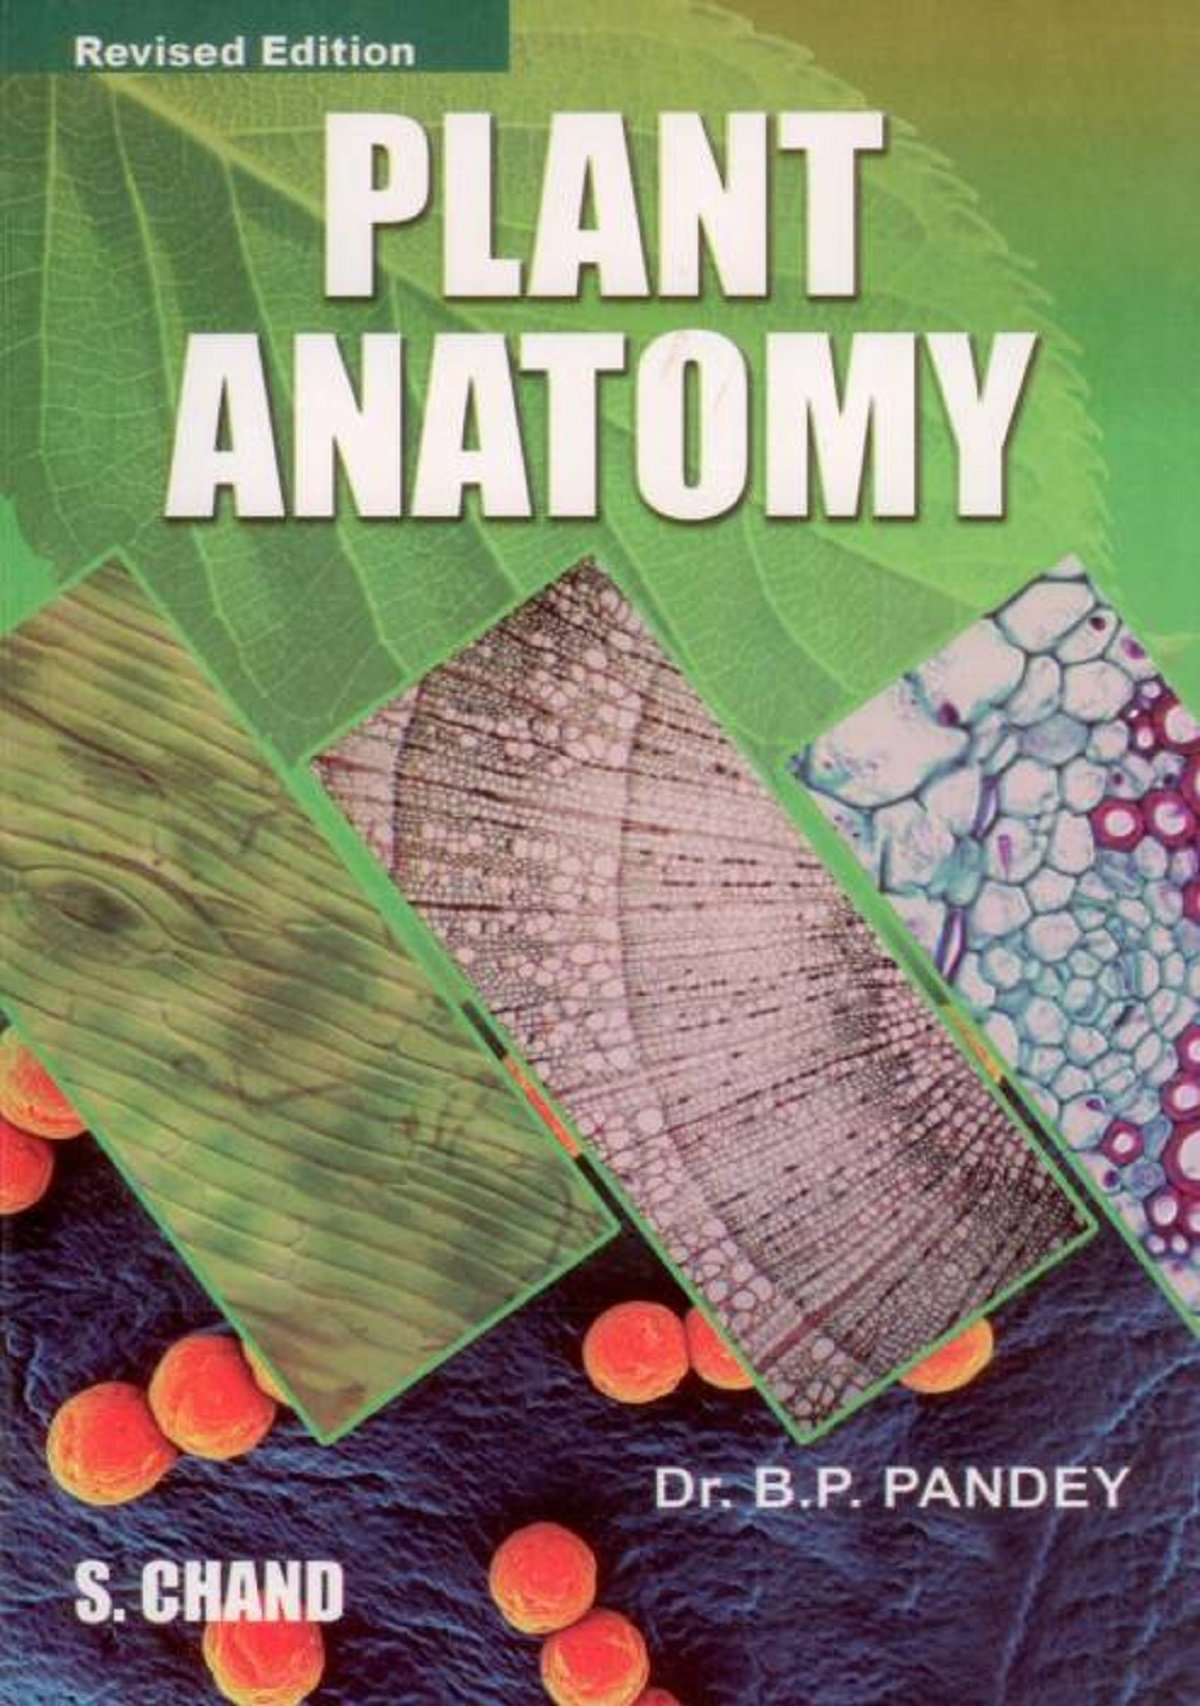 Buy Plant Anatomy Book Online at Low Prices in India | Plant Anatomy ...